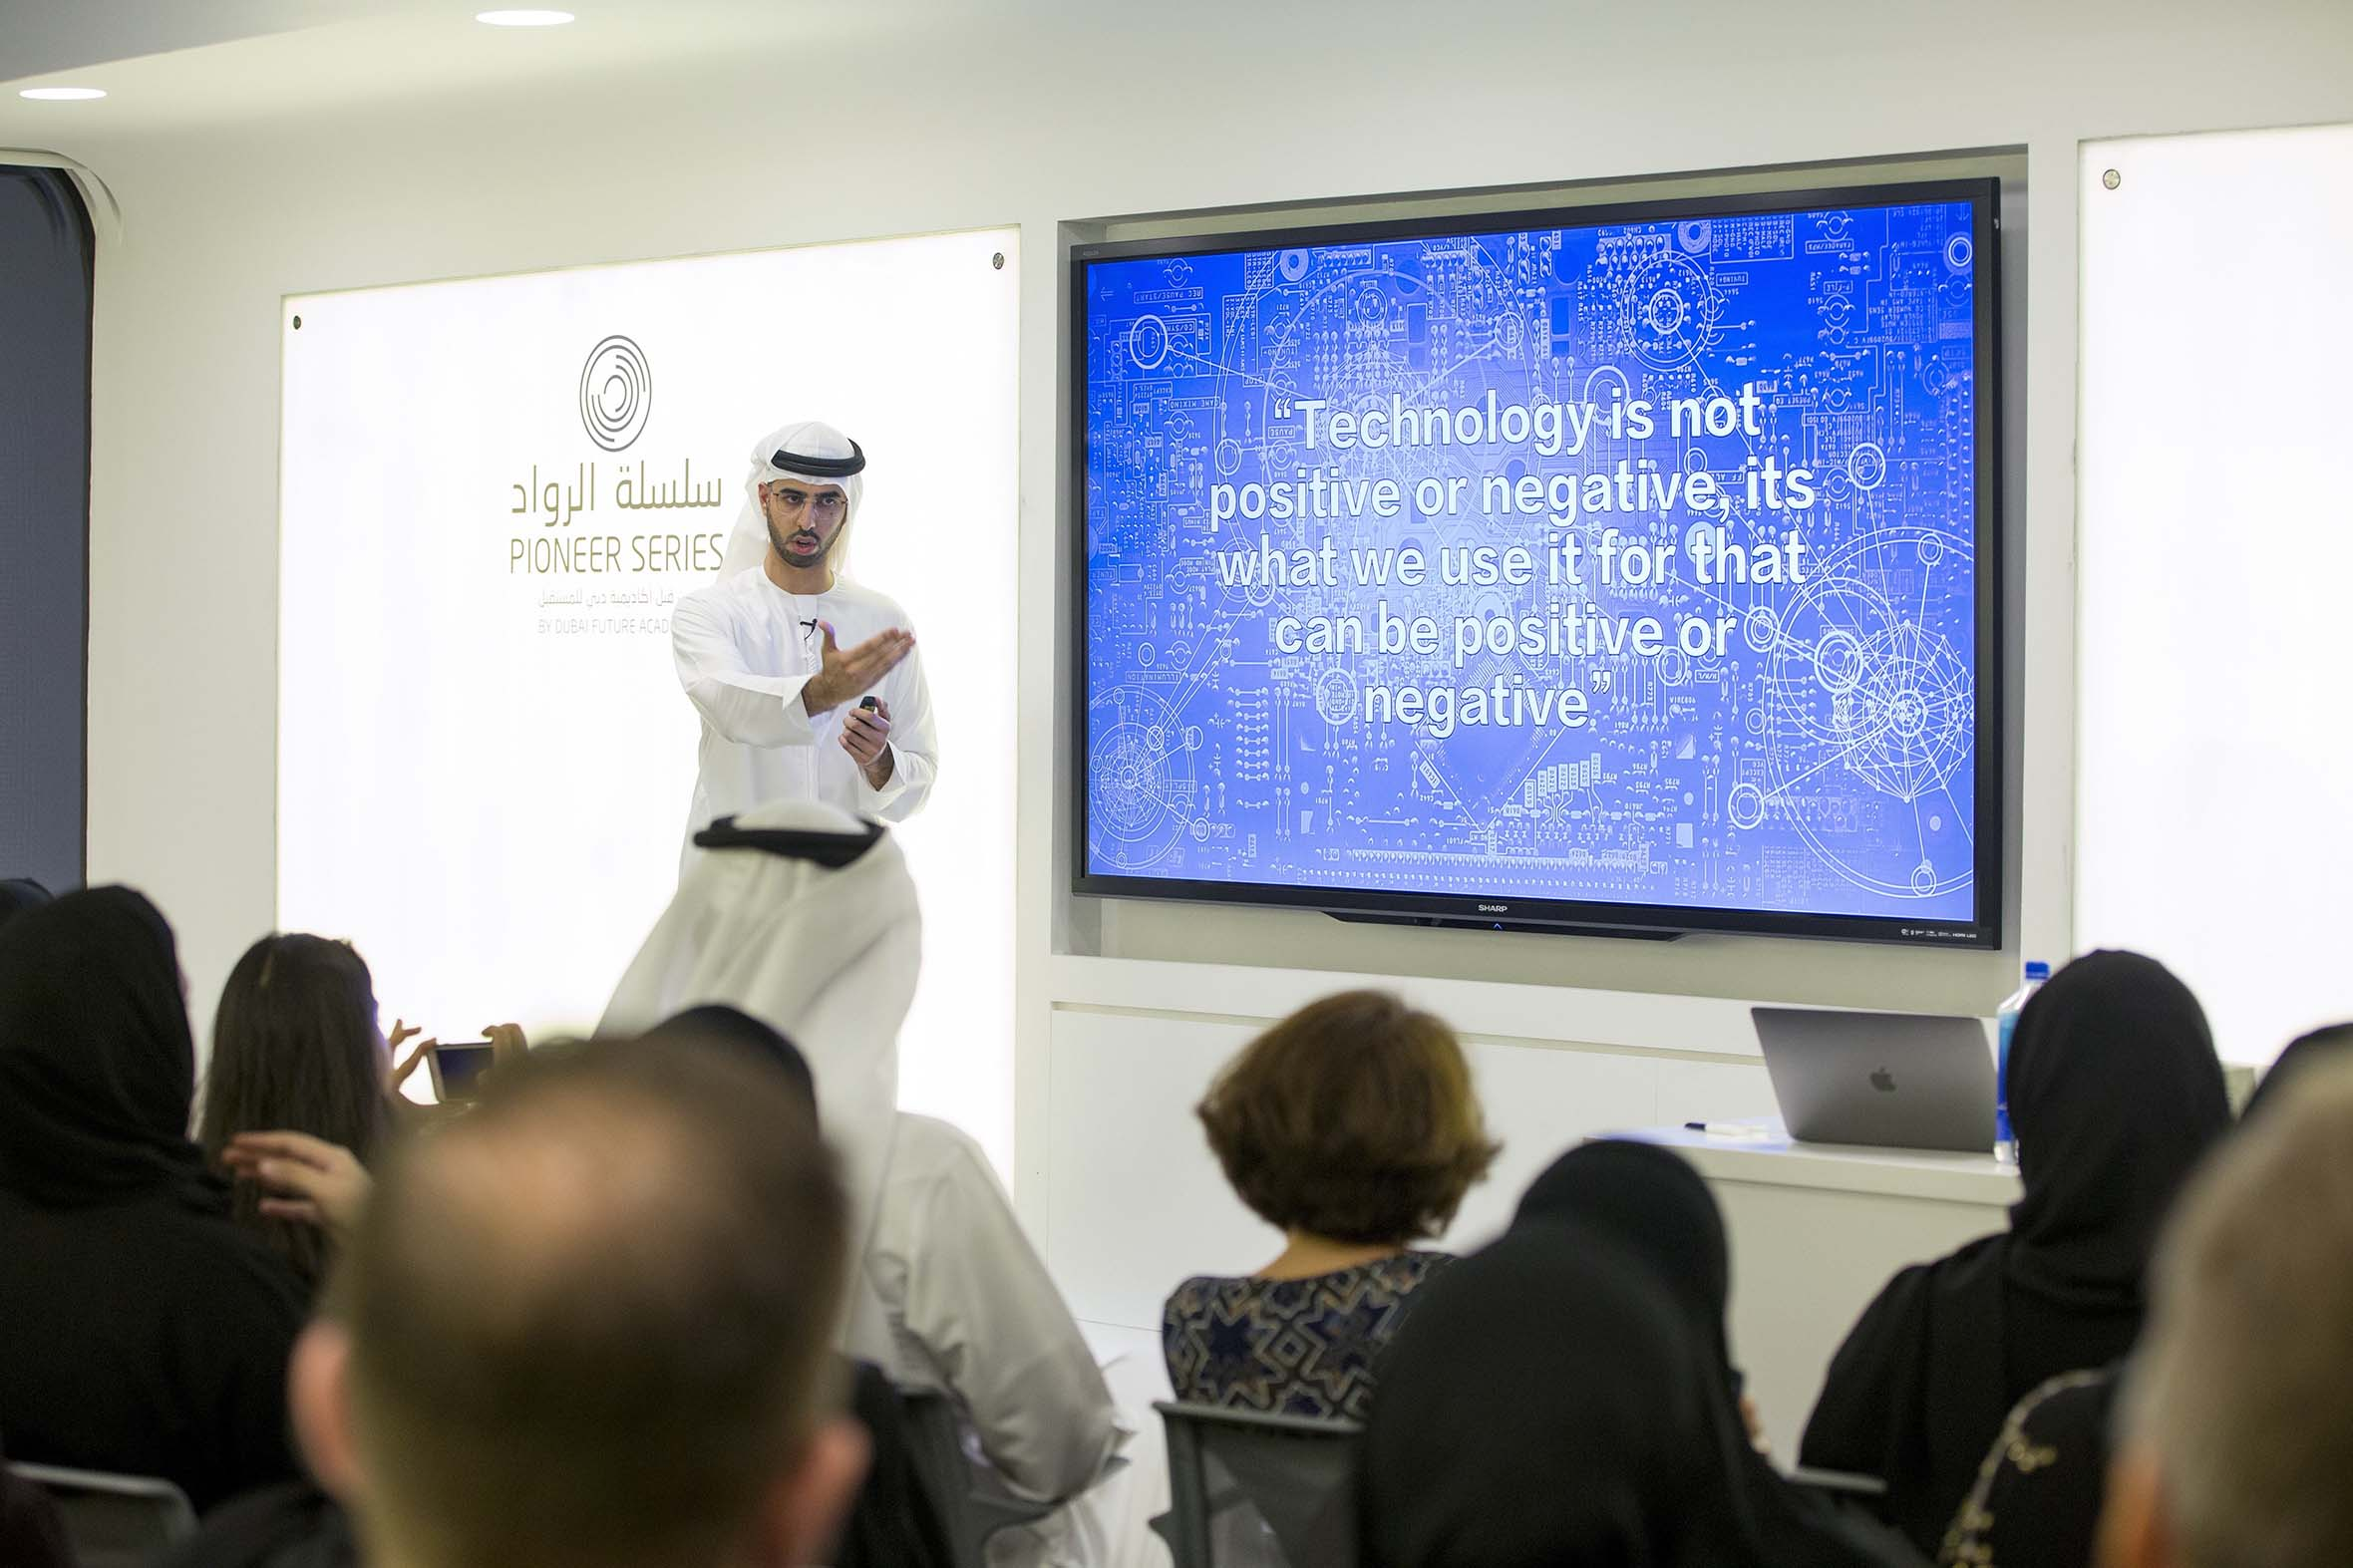 al olama discusses future technology challenges in 'pioneer series'2